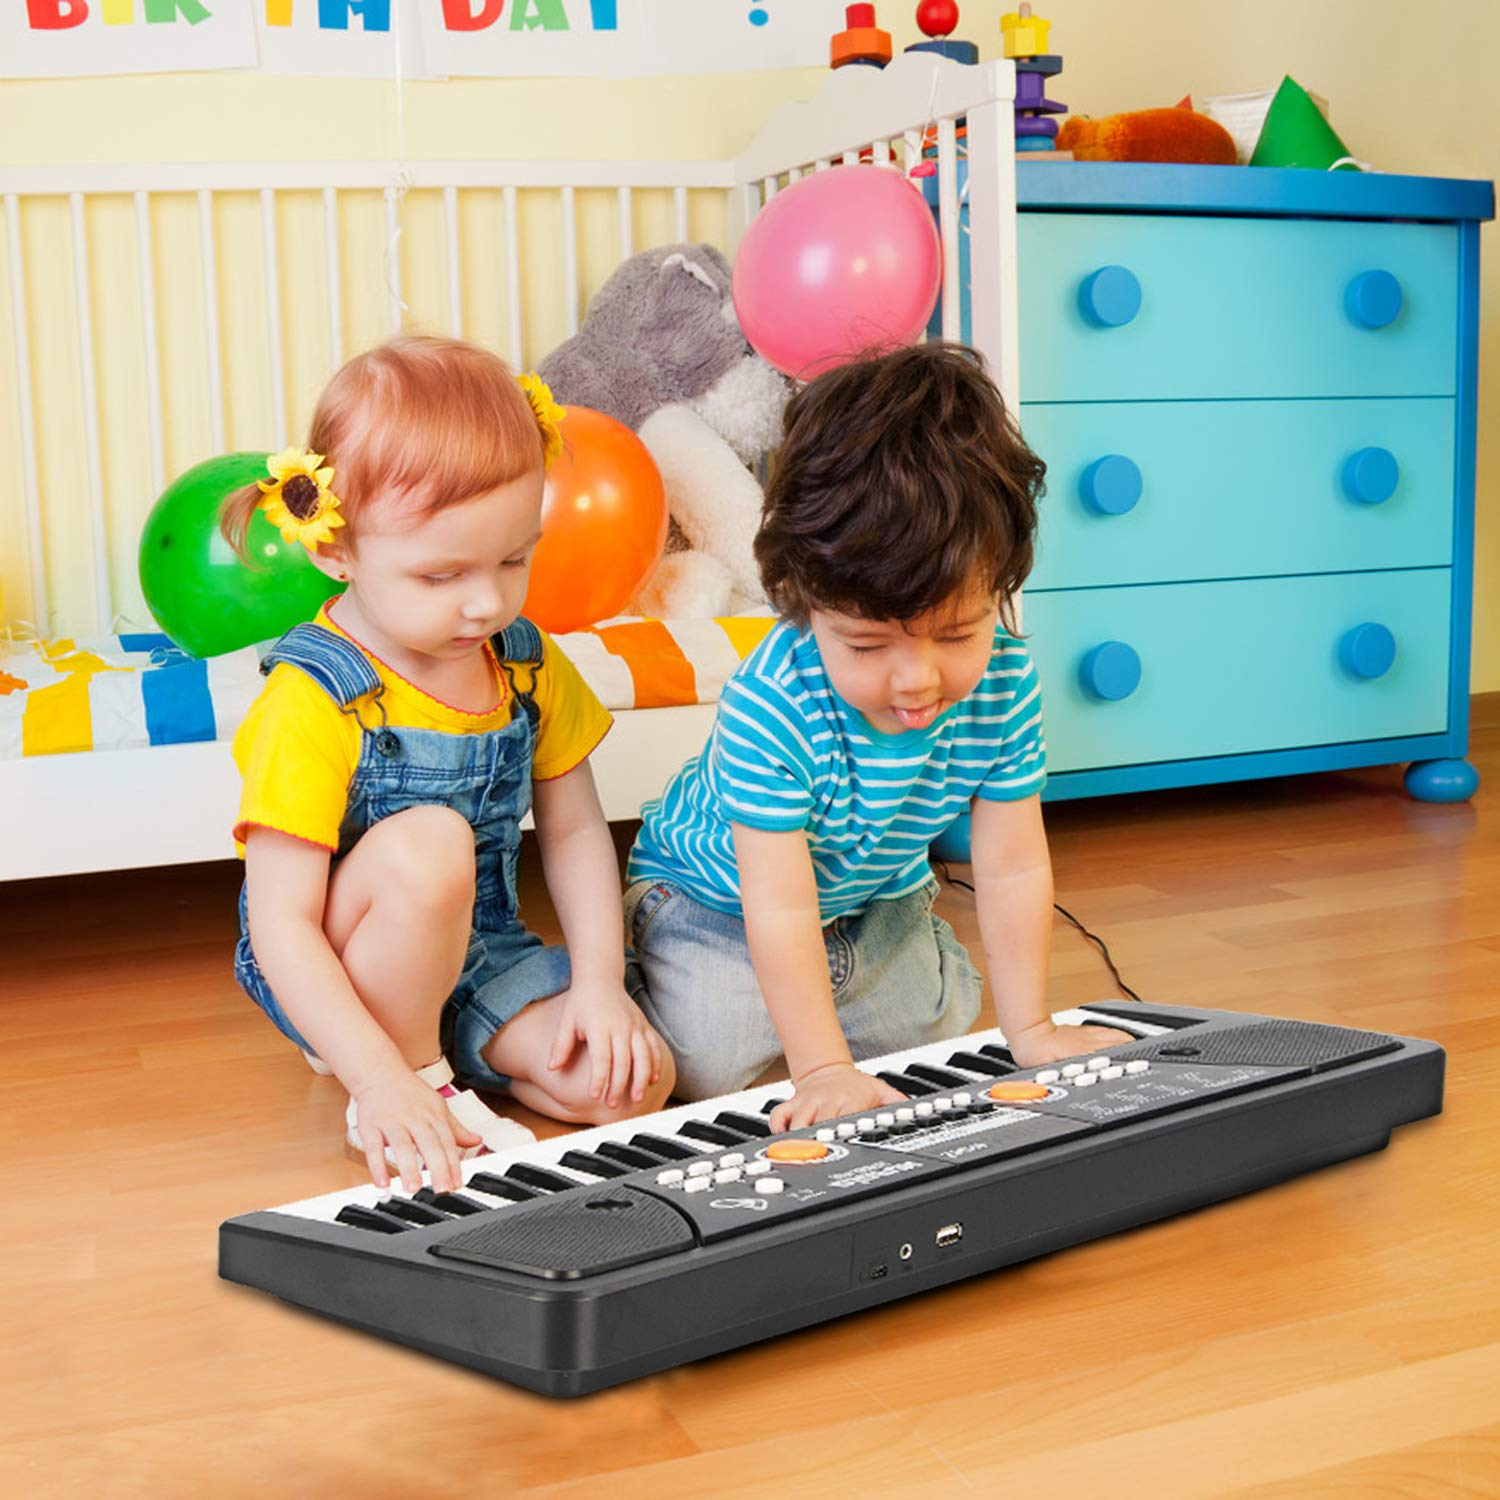 aPerfectLife 49 Keys Piano Keyboard for Kids Multifunction Portable Piano Electronic Keyboard Music Instrument for Kids Early Learning Educational Toy (Black) by aPerfectLife (Image #6)